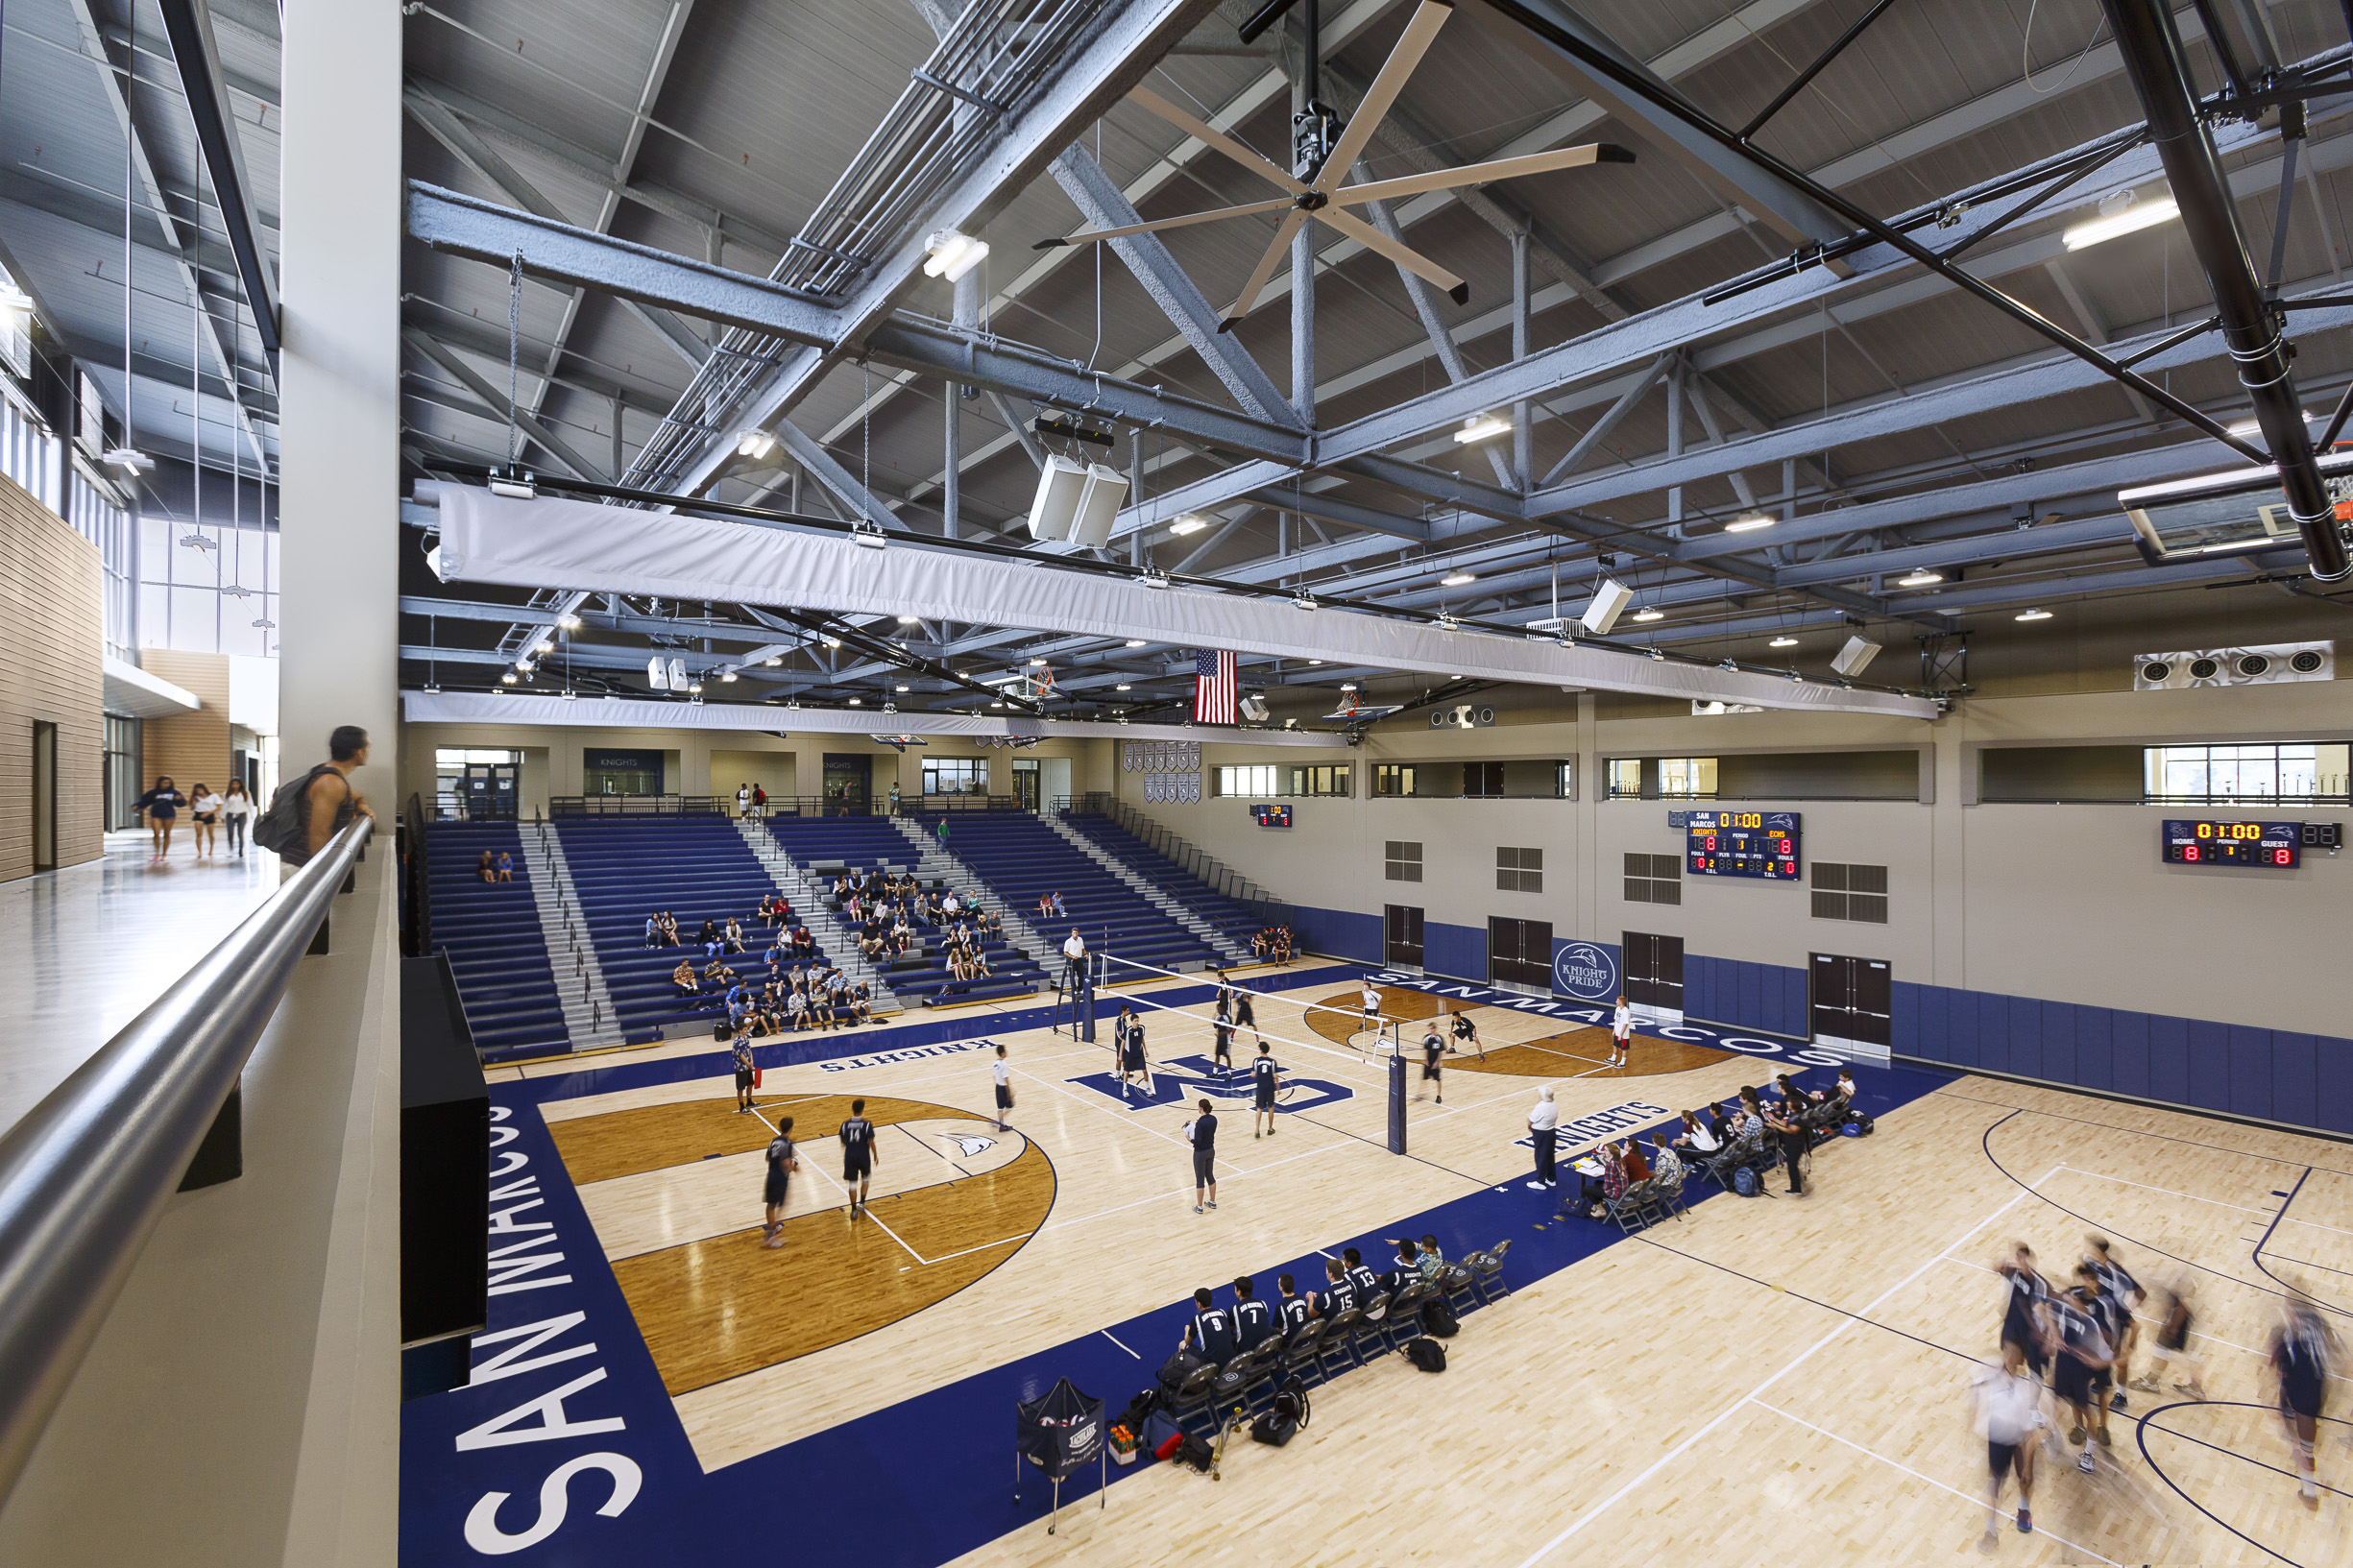 High School Receives High Honor For Design Transformation